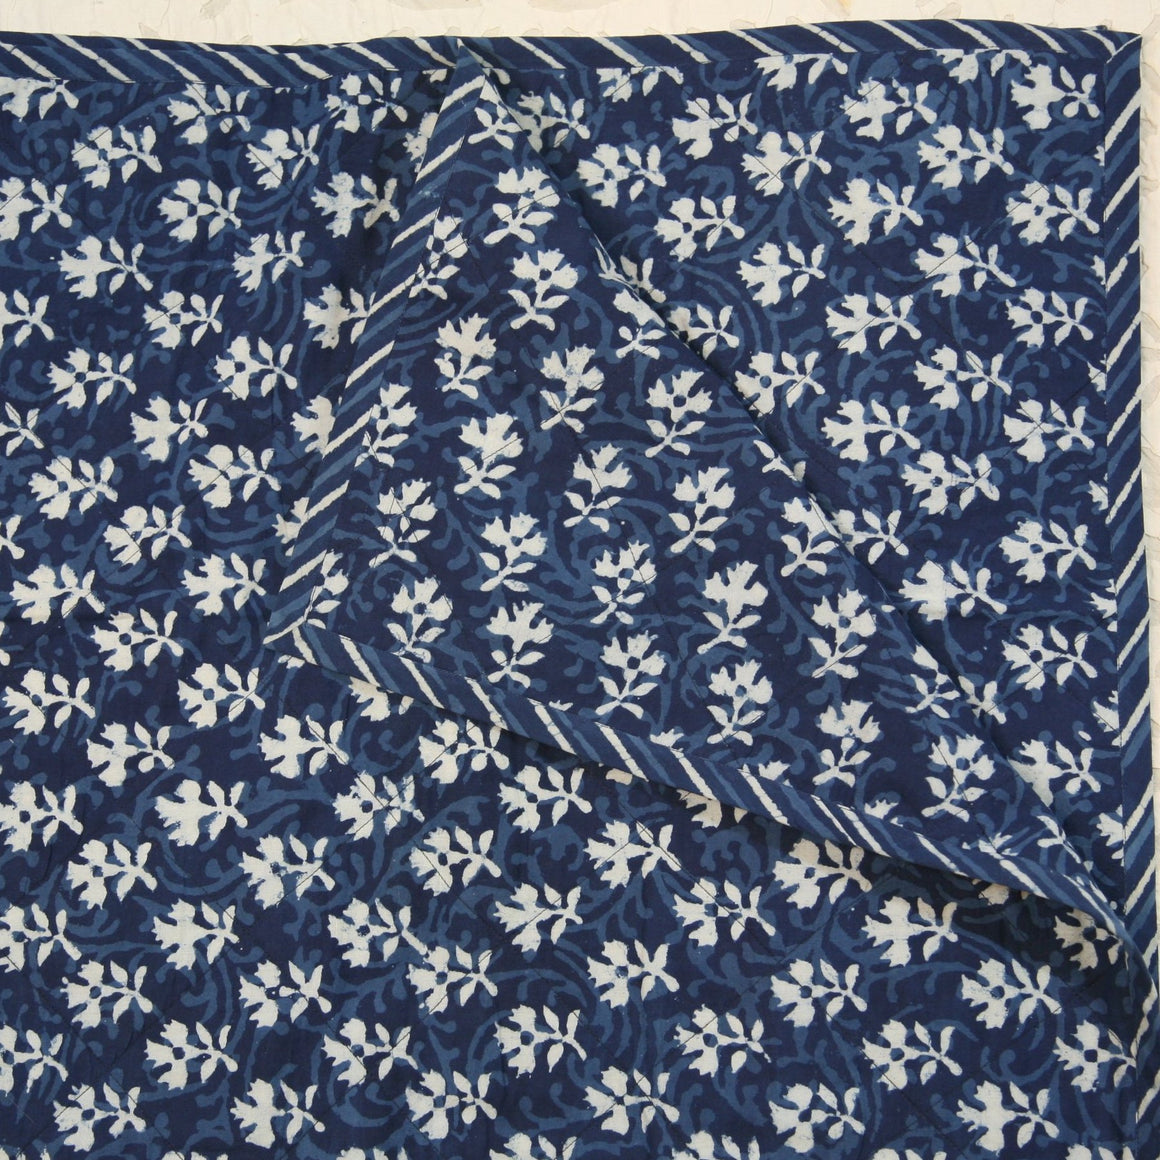 Quilted Couch Throw in Hand Block Indigo Floral Buti Print